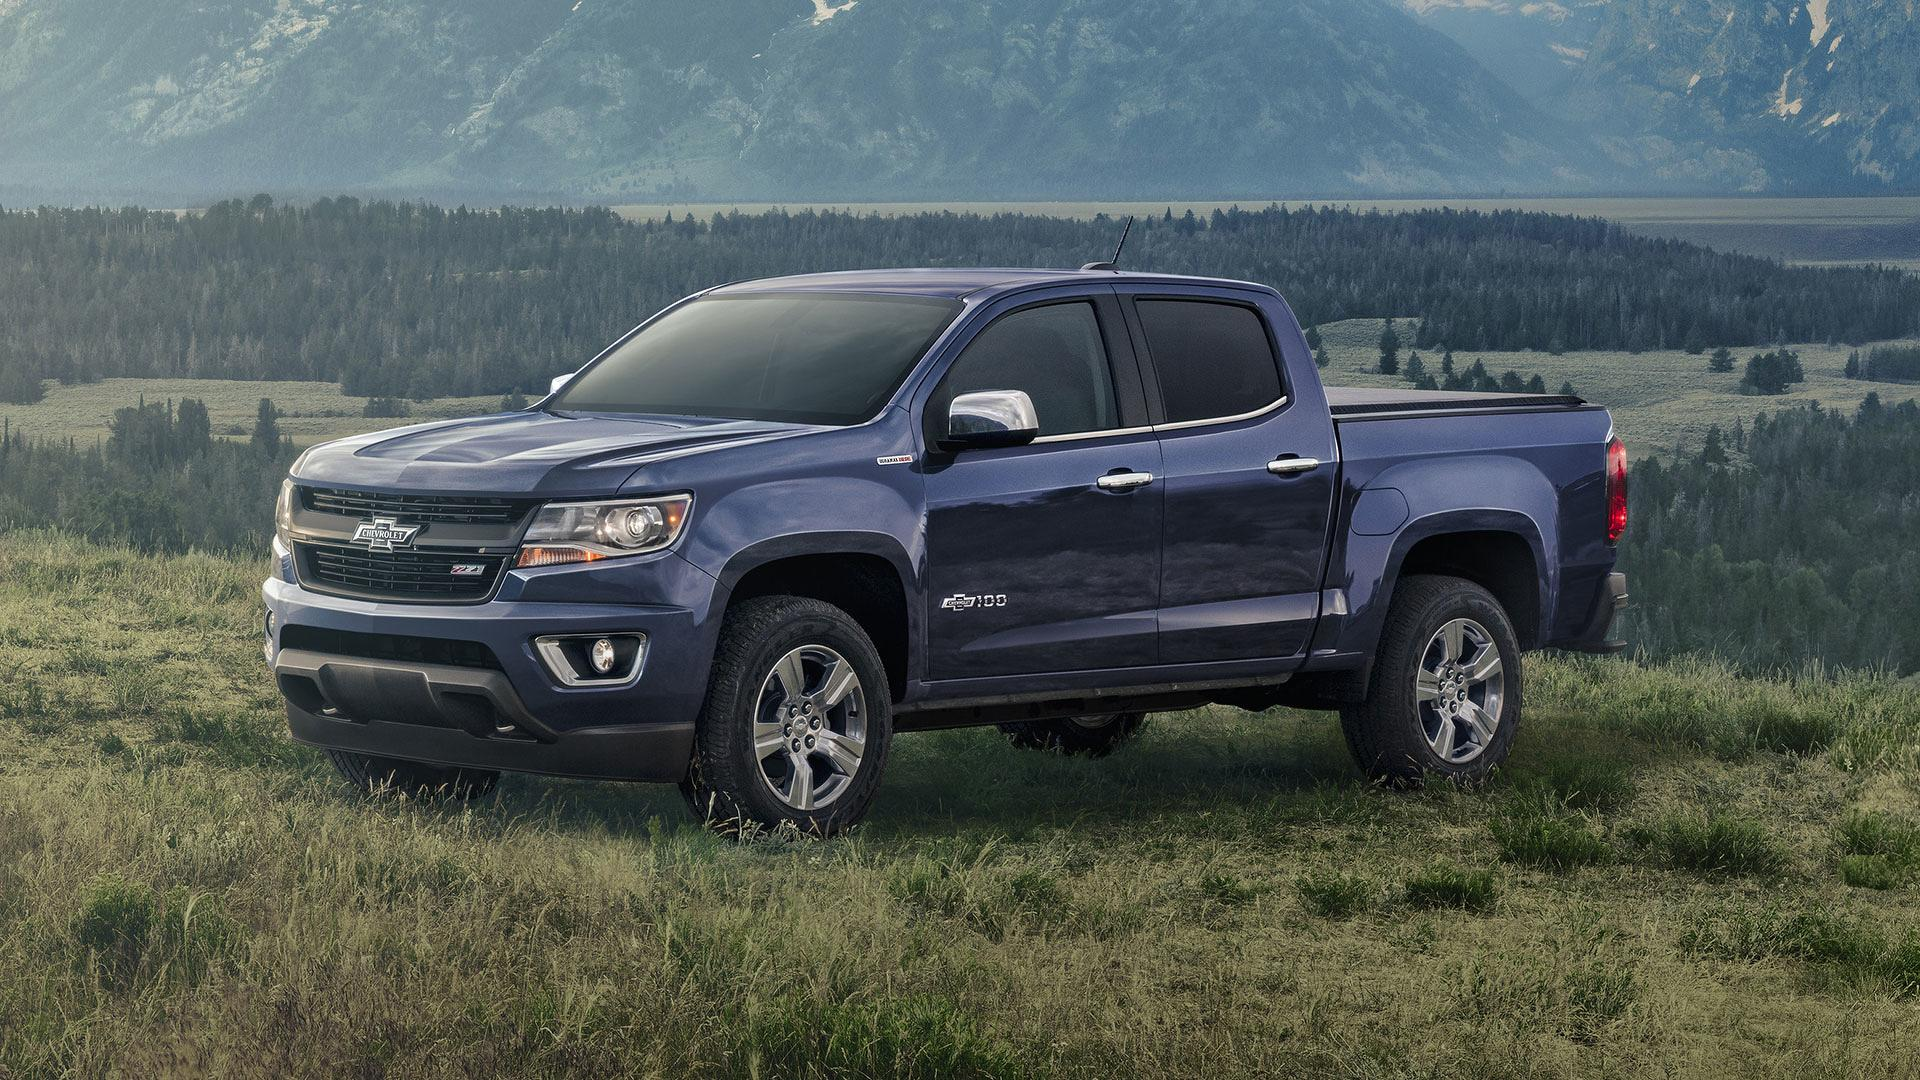 "2018 Centennial Edition Colorado - The Centennial Edition Colorado includes all of the features available on the Z71 crew cab and adds the Centennial Blue exterior paint color, front and rear heritage bowties and 100 year door badges. The Centennial Edition Colorado also includes a body-color rear bumper and accessory grille surround, chrome belt molding, chrome accessory tow hooks, mirror caps and handles, spray-in bedliner with bowtie emblems and LT optional 18"" wheels with monochromatic cap."